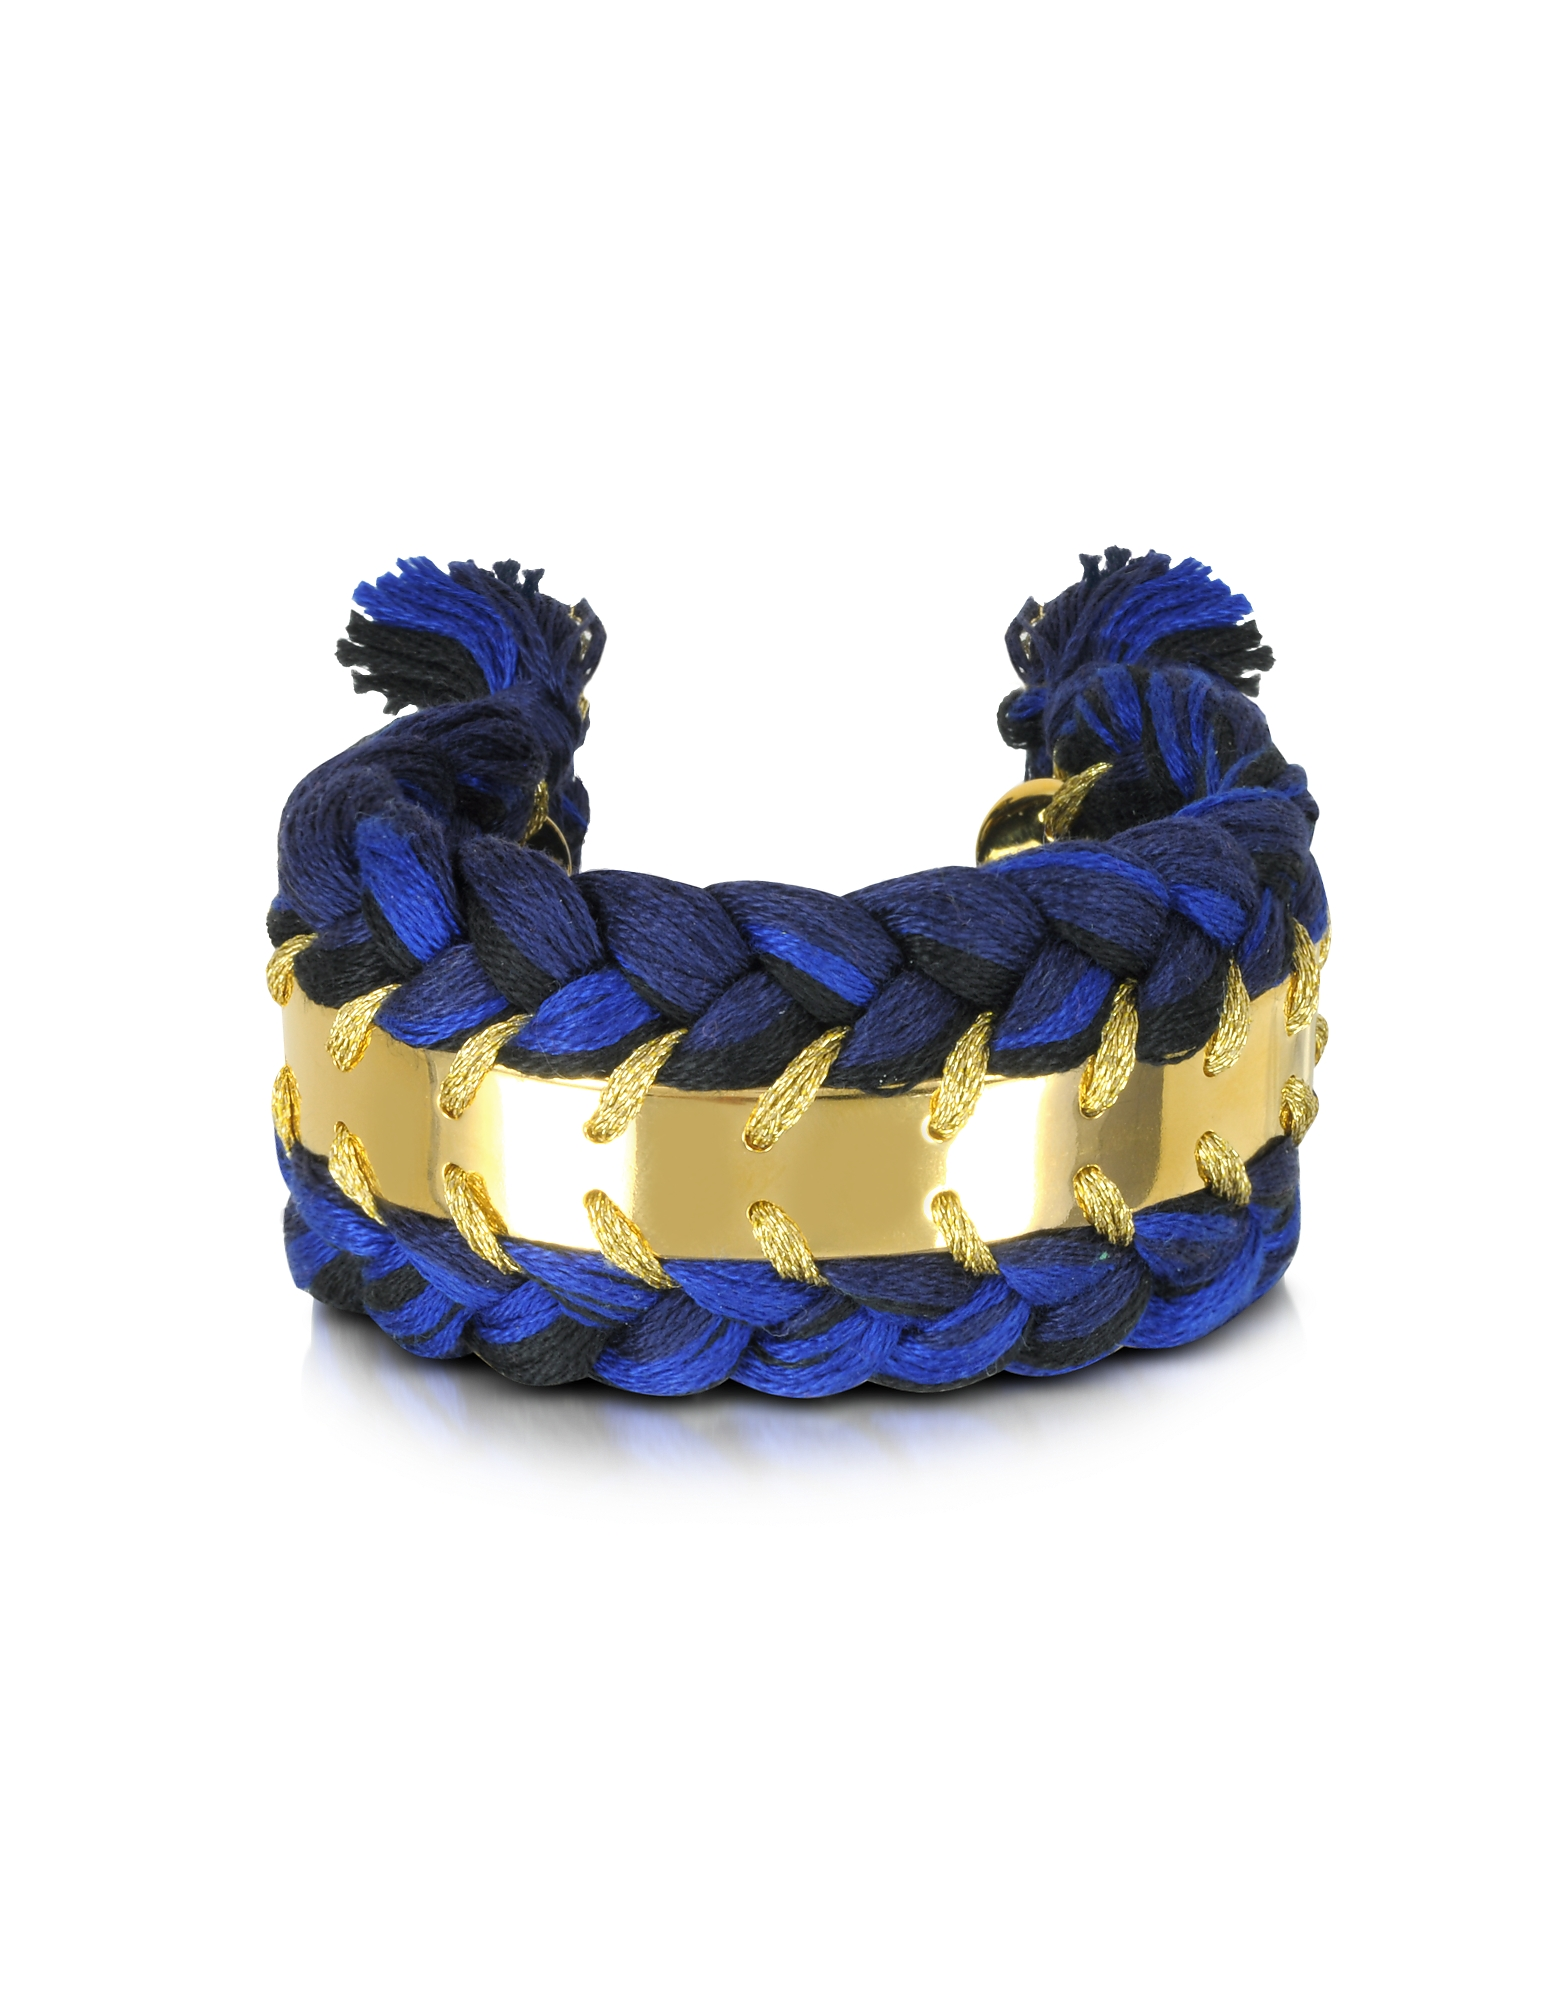 Image of Aurelie Bidermann Designer Bracelets, Copacabana Navy and Black Cotton Double Bracelet